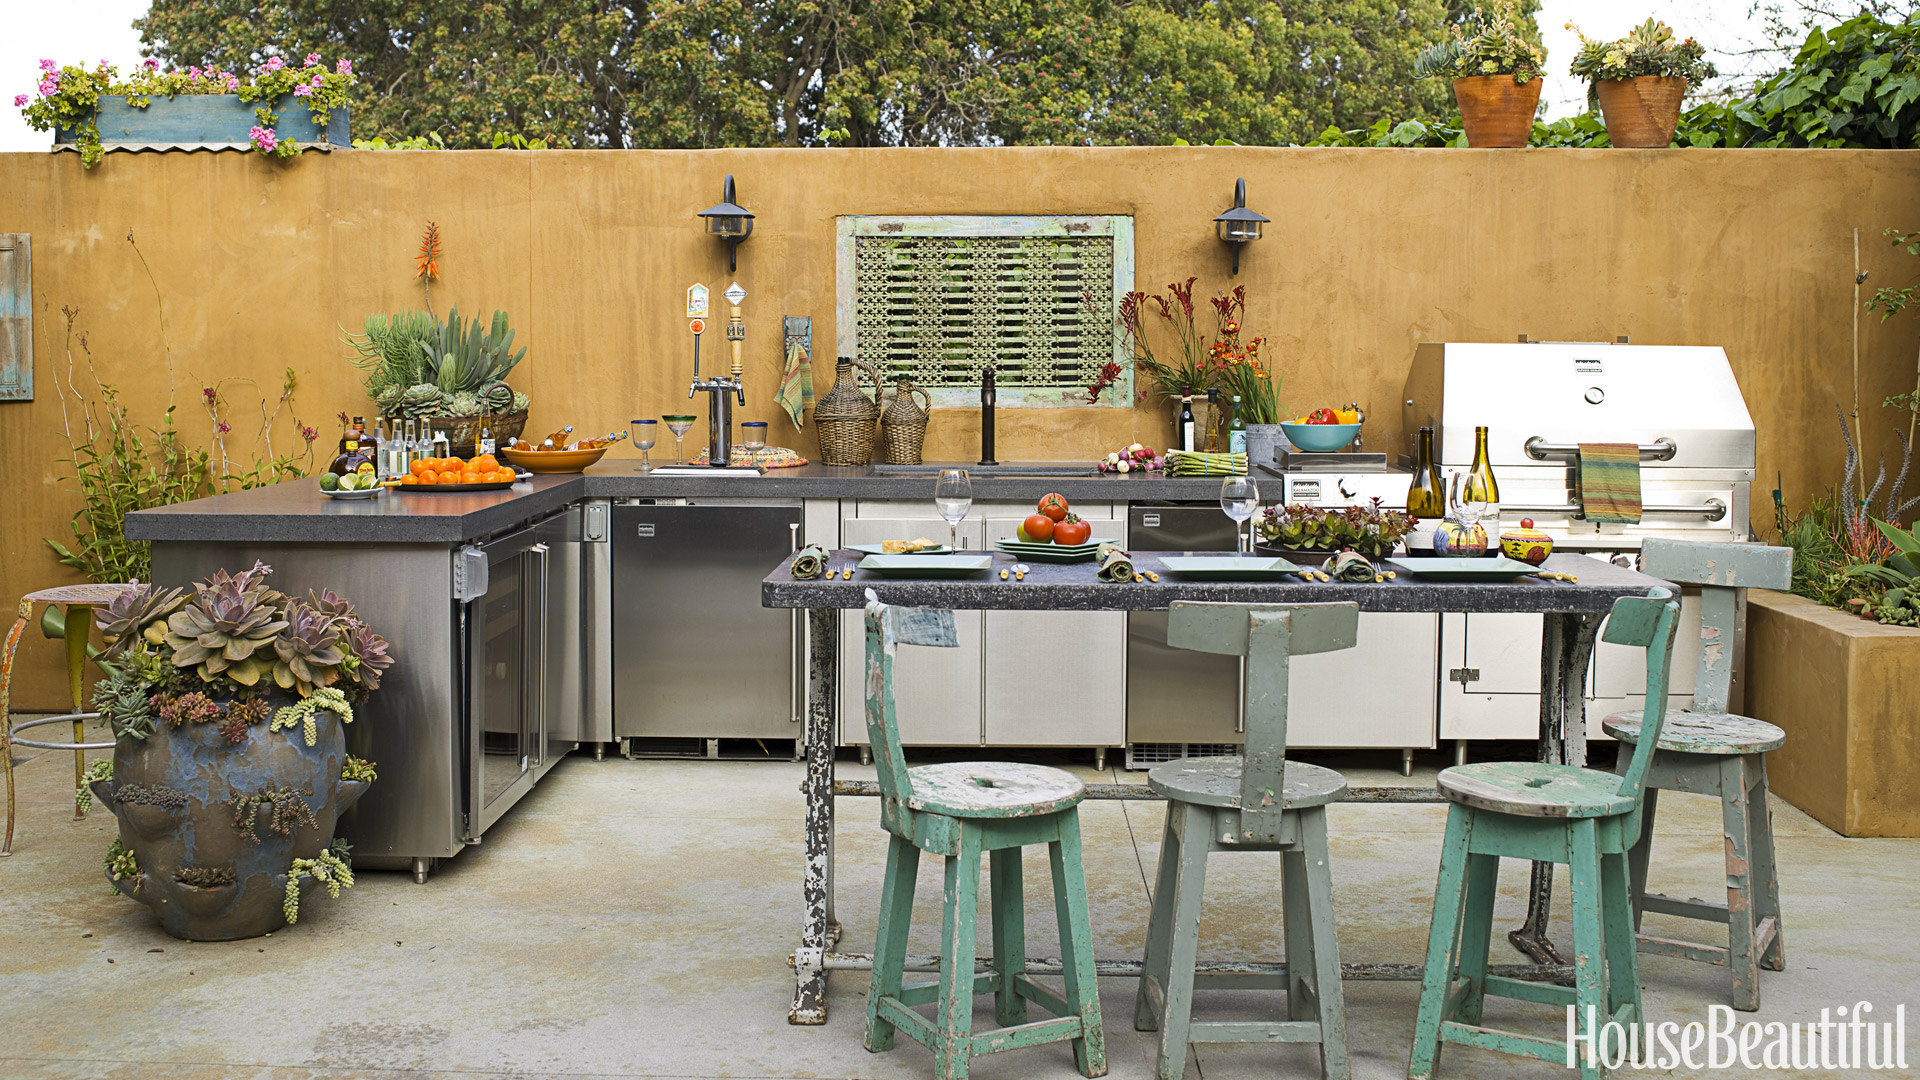 20 outdoor kitchen design ideas and pictures DJKYDFH